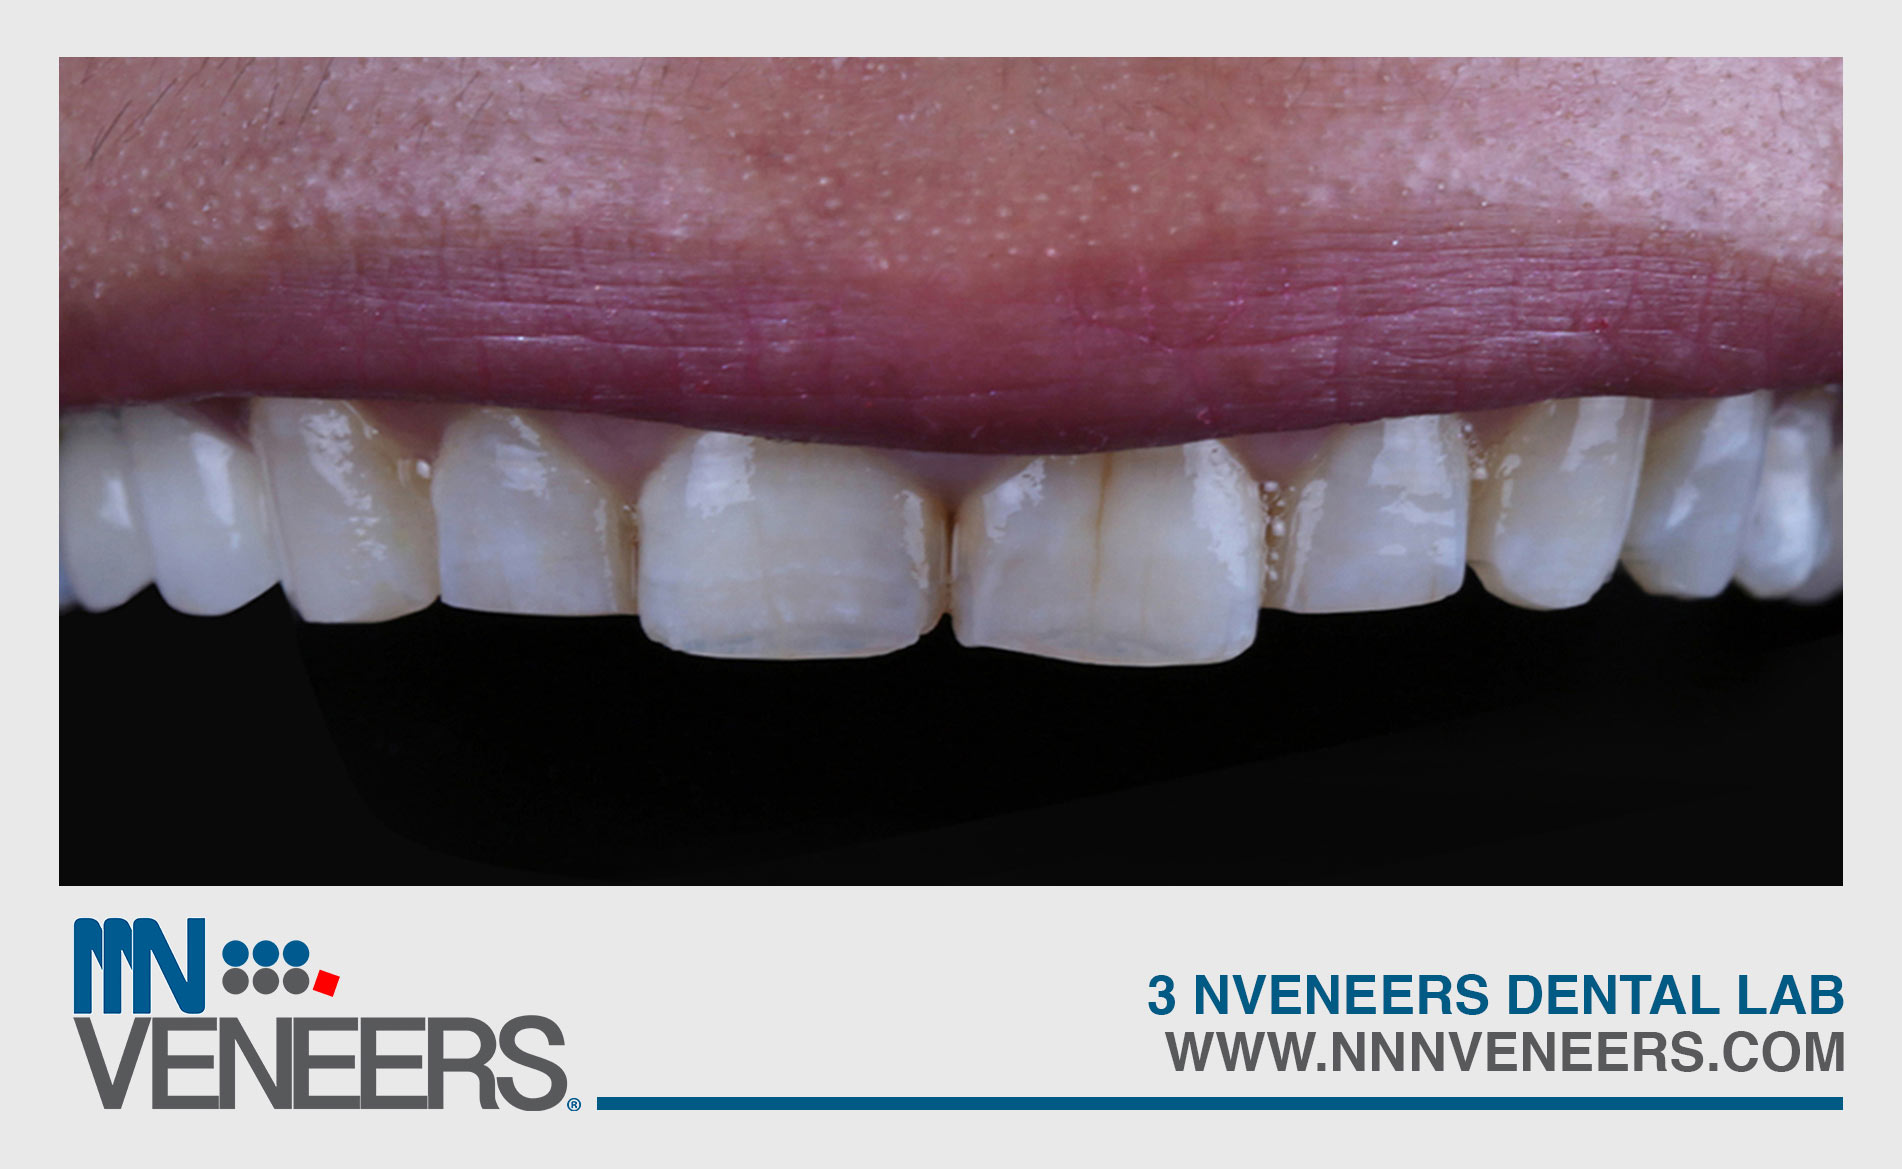 image gallery teeth 4 before nnn veneer